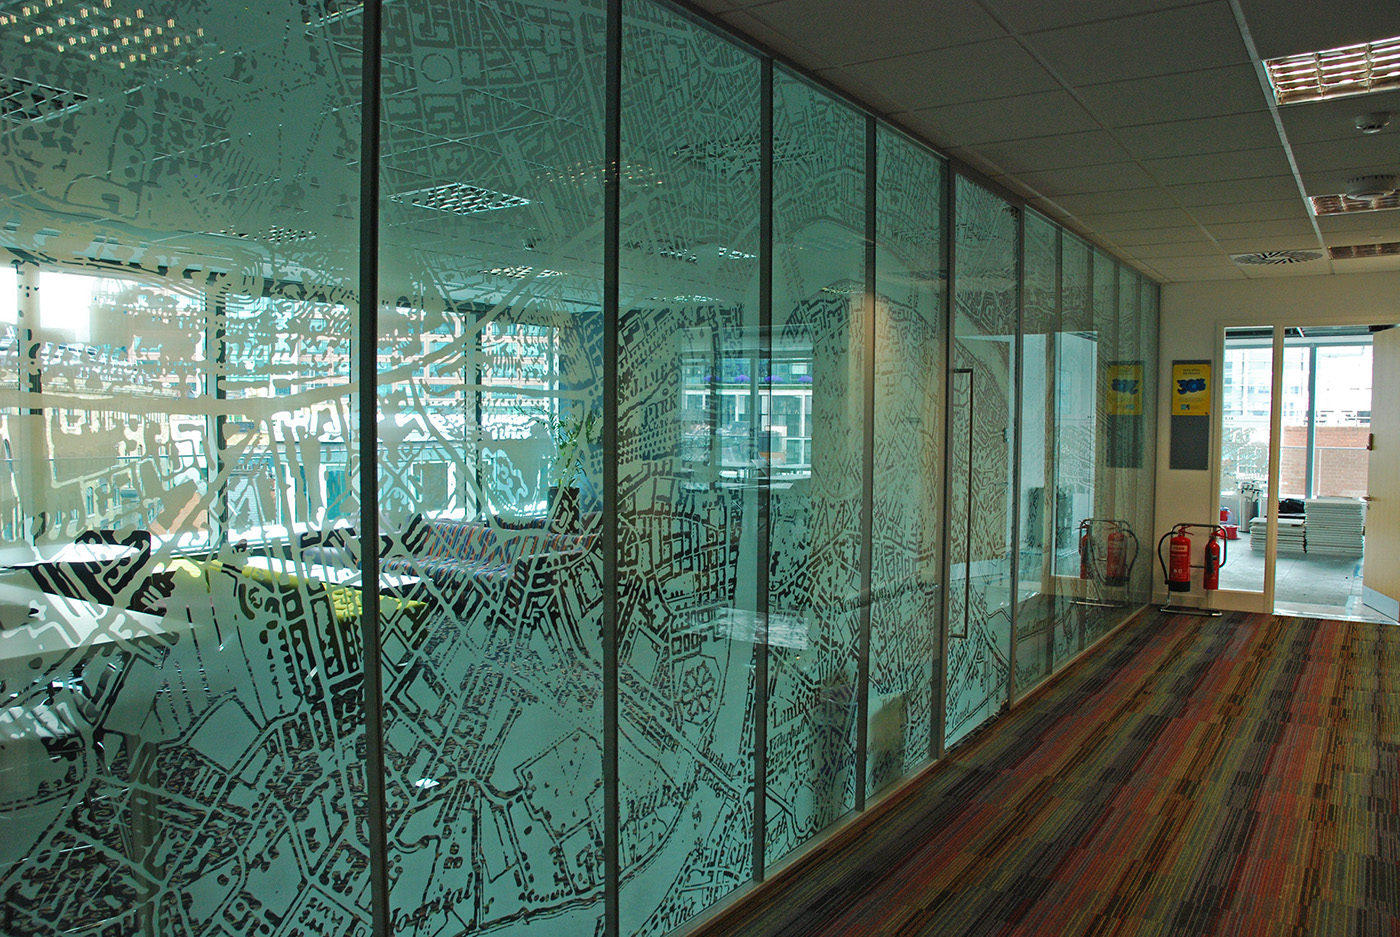 Uea london glass manifestation on behance for Window net design